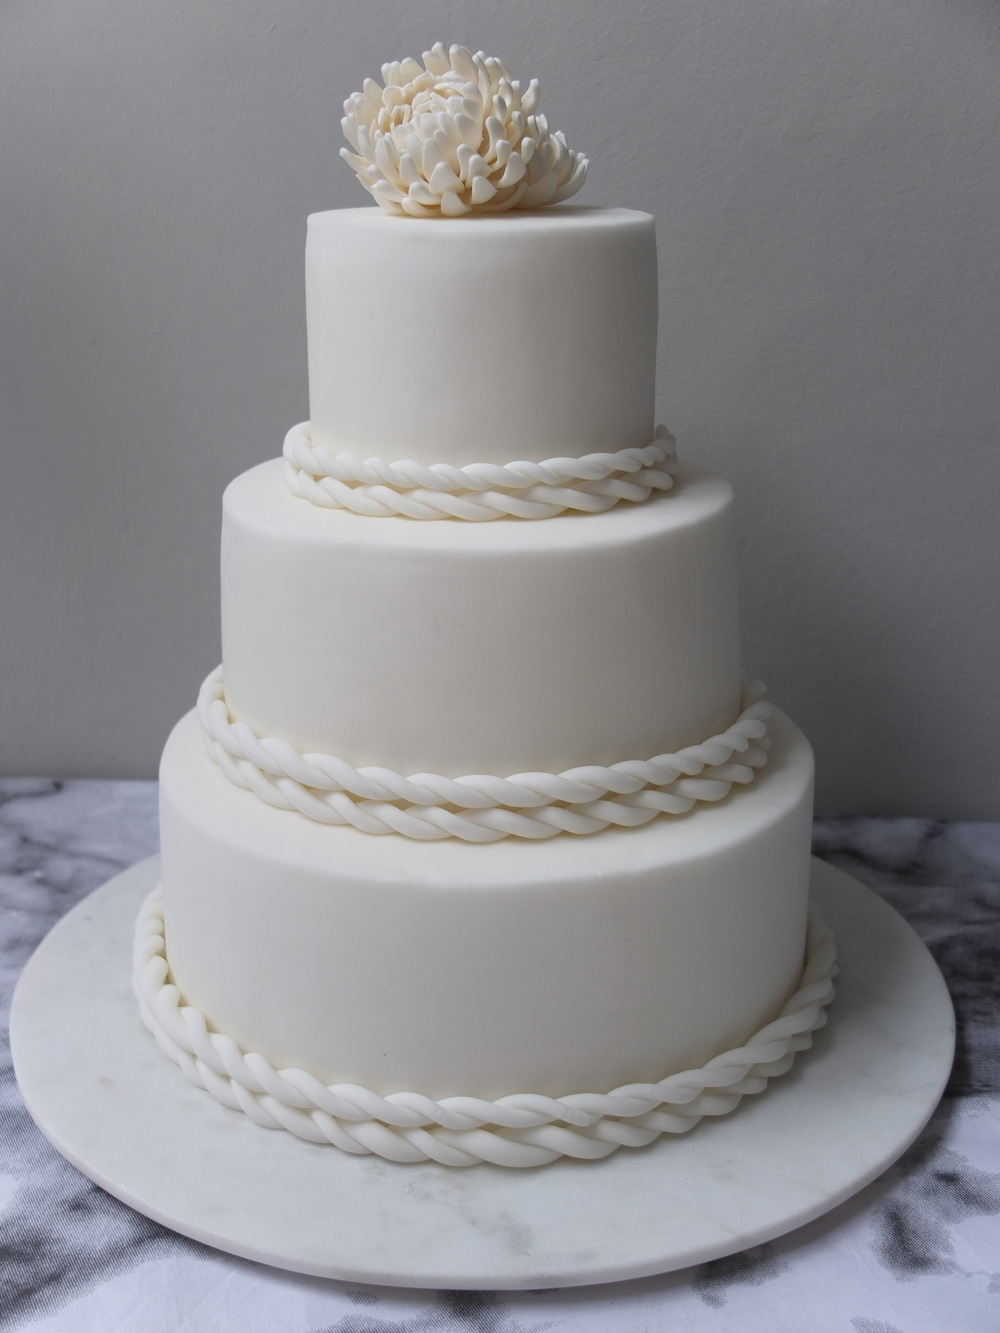 Braided Chrysanthemums - Abundance Cakes Wedding cake